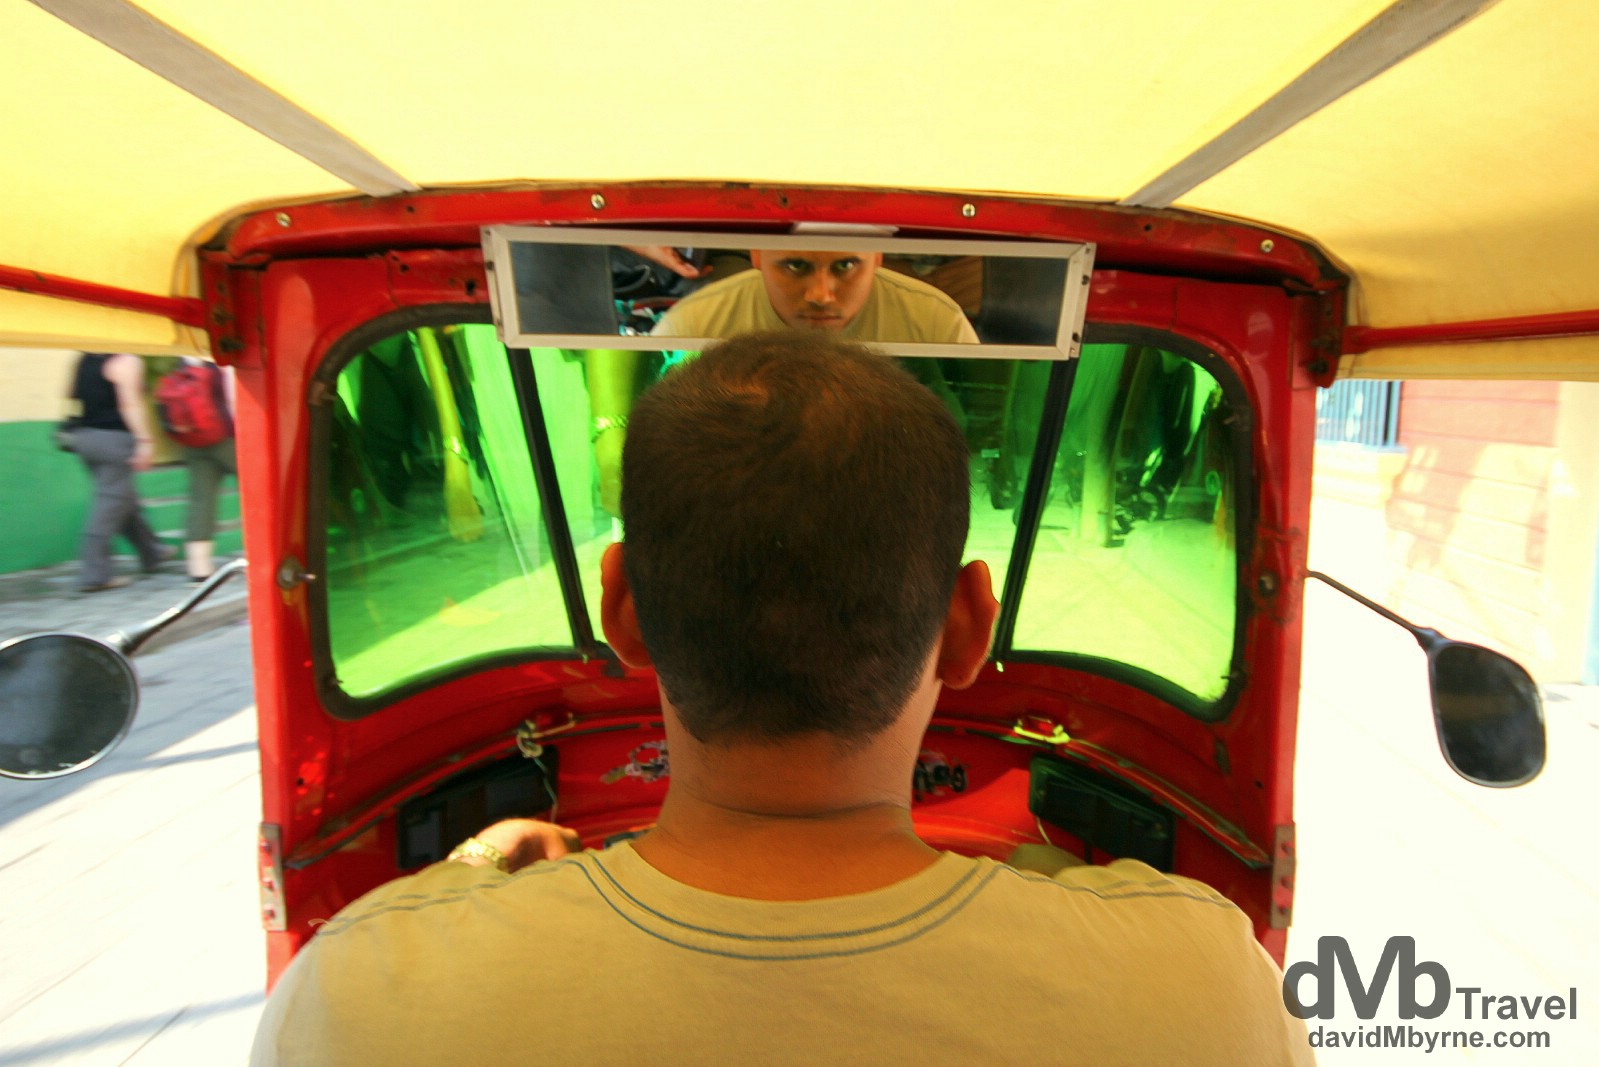 In a tuk-tuk en route to the bus station in Flores, northern Guatemala. May 18th 2013.